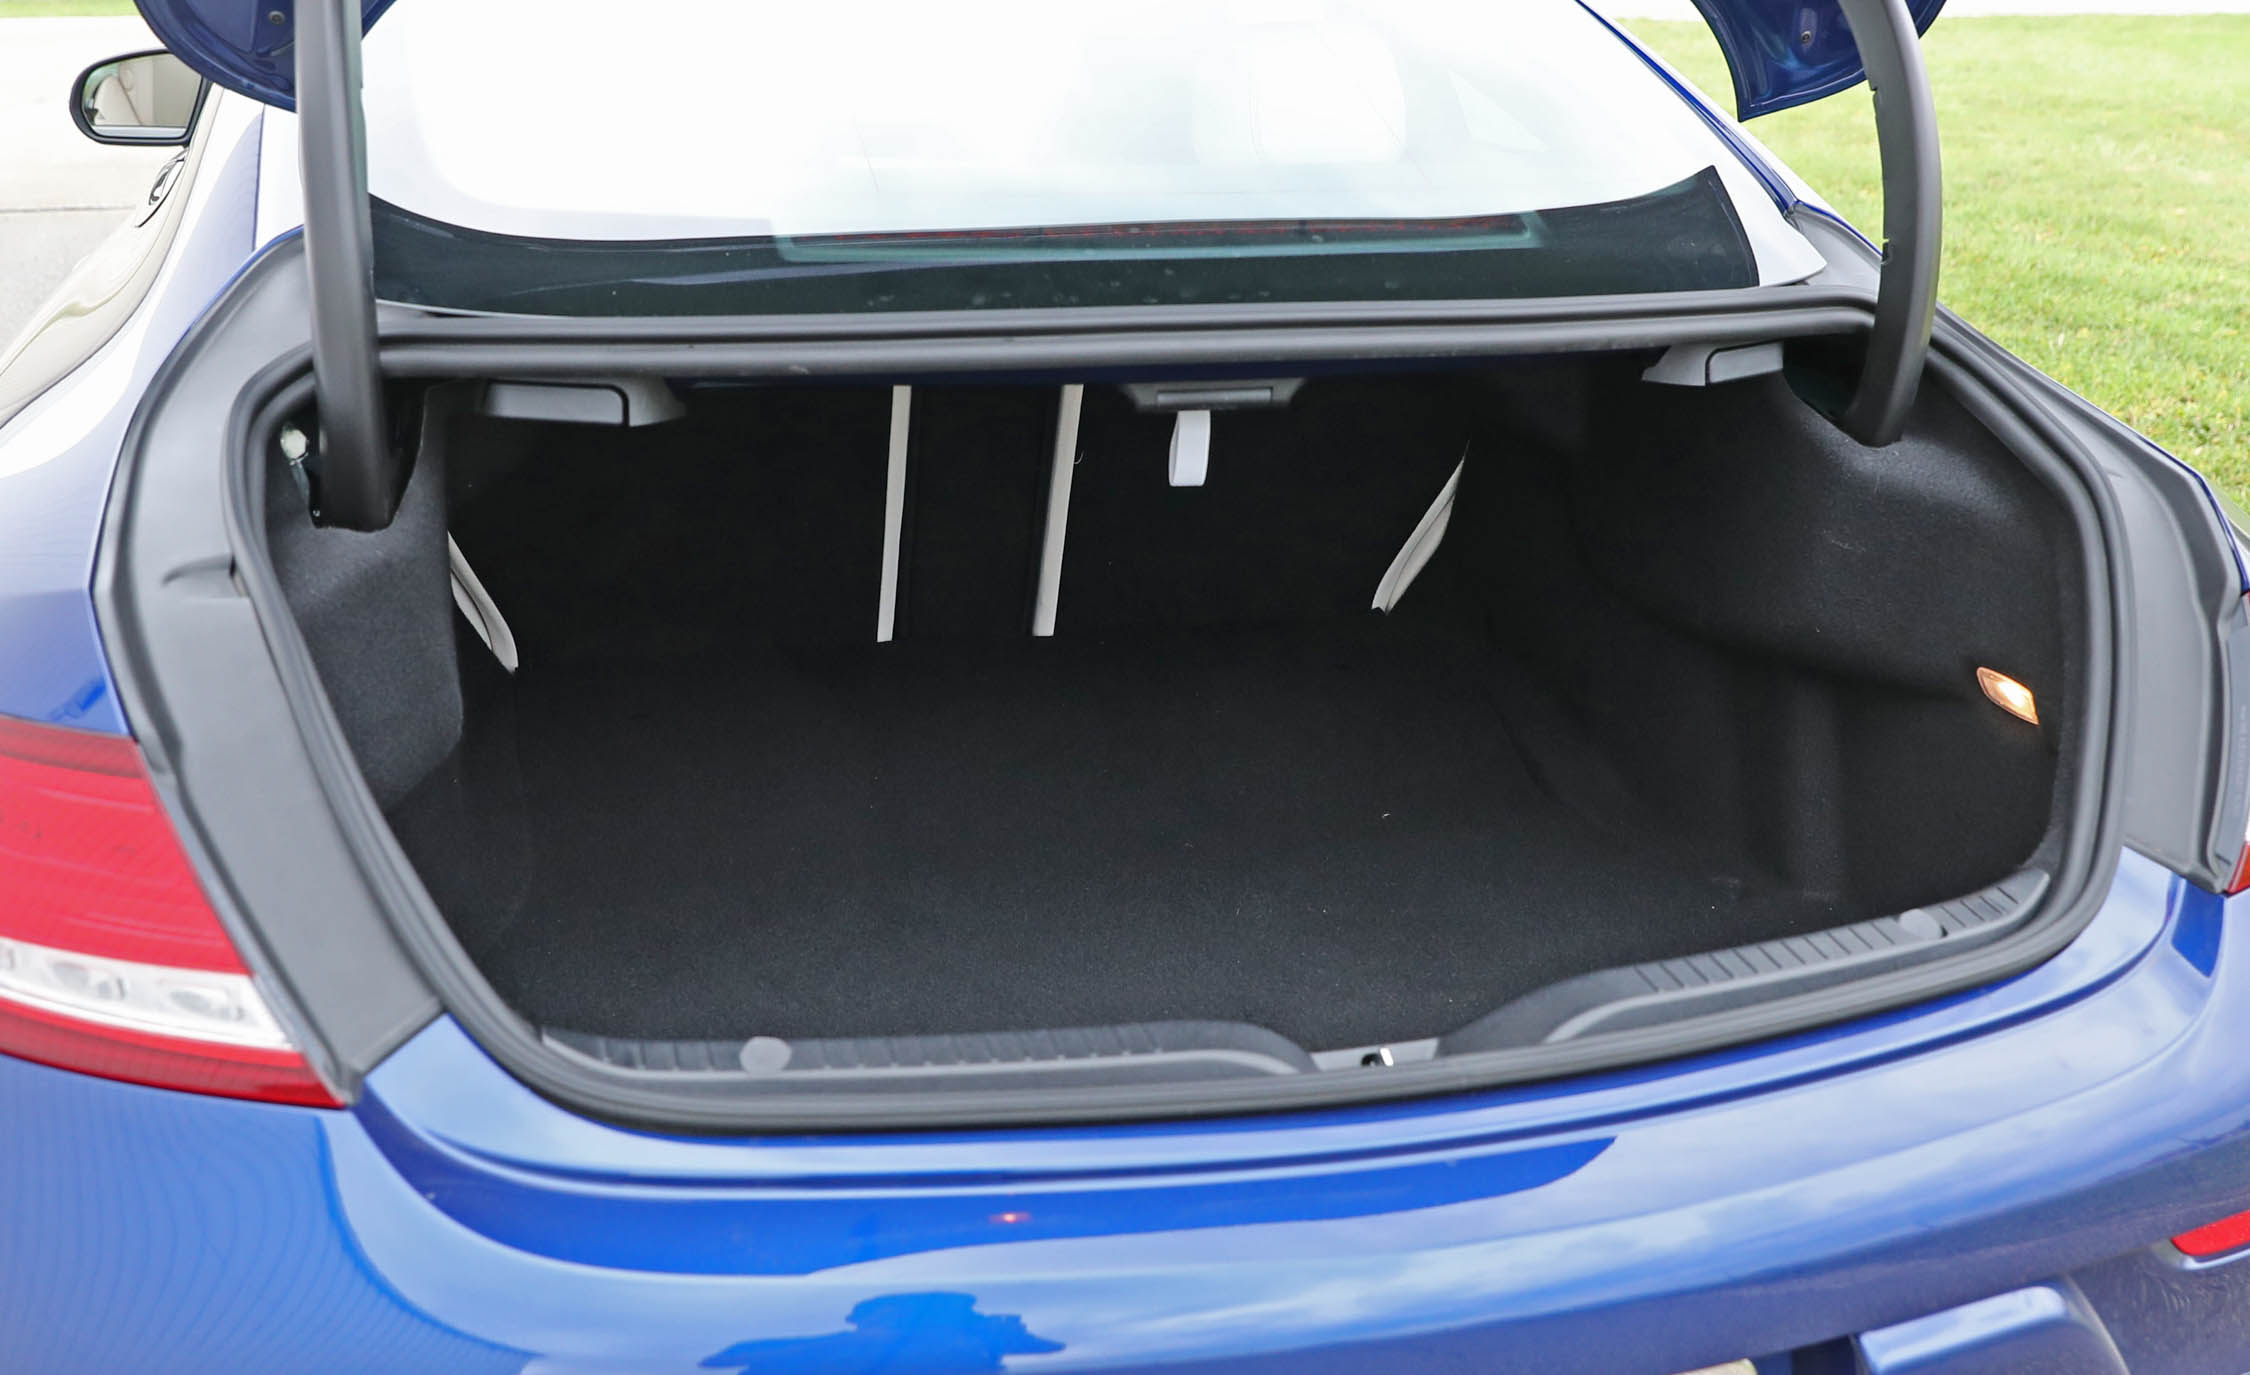 2017 Mercedes Benz C300 4MATIC Coupe Interior View Cargo Trunk (View 20 of 44)